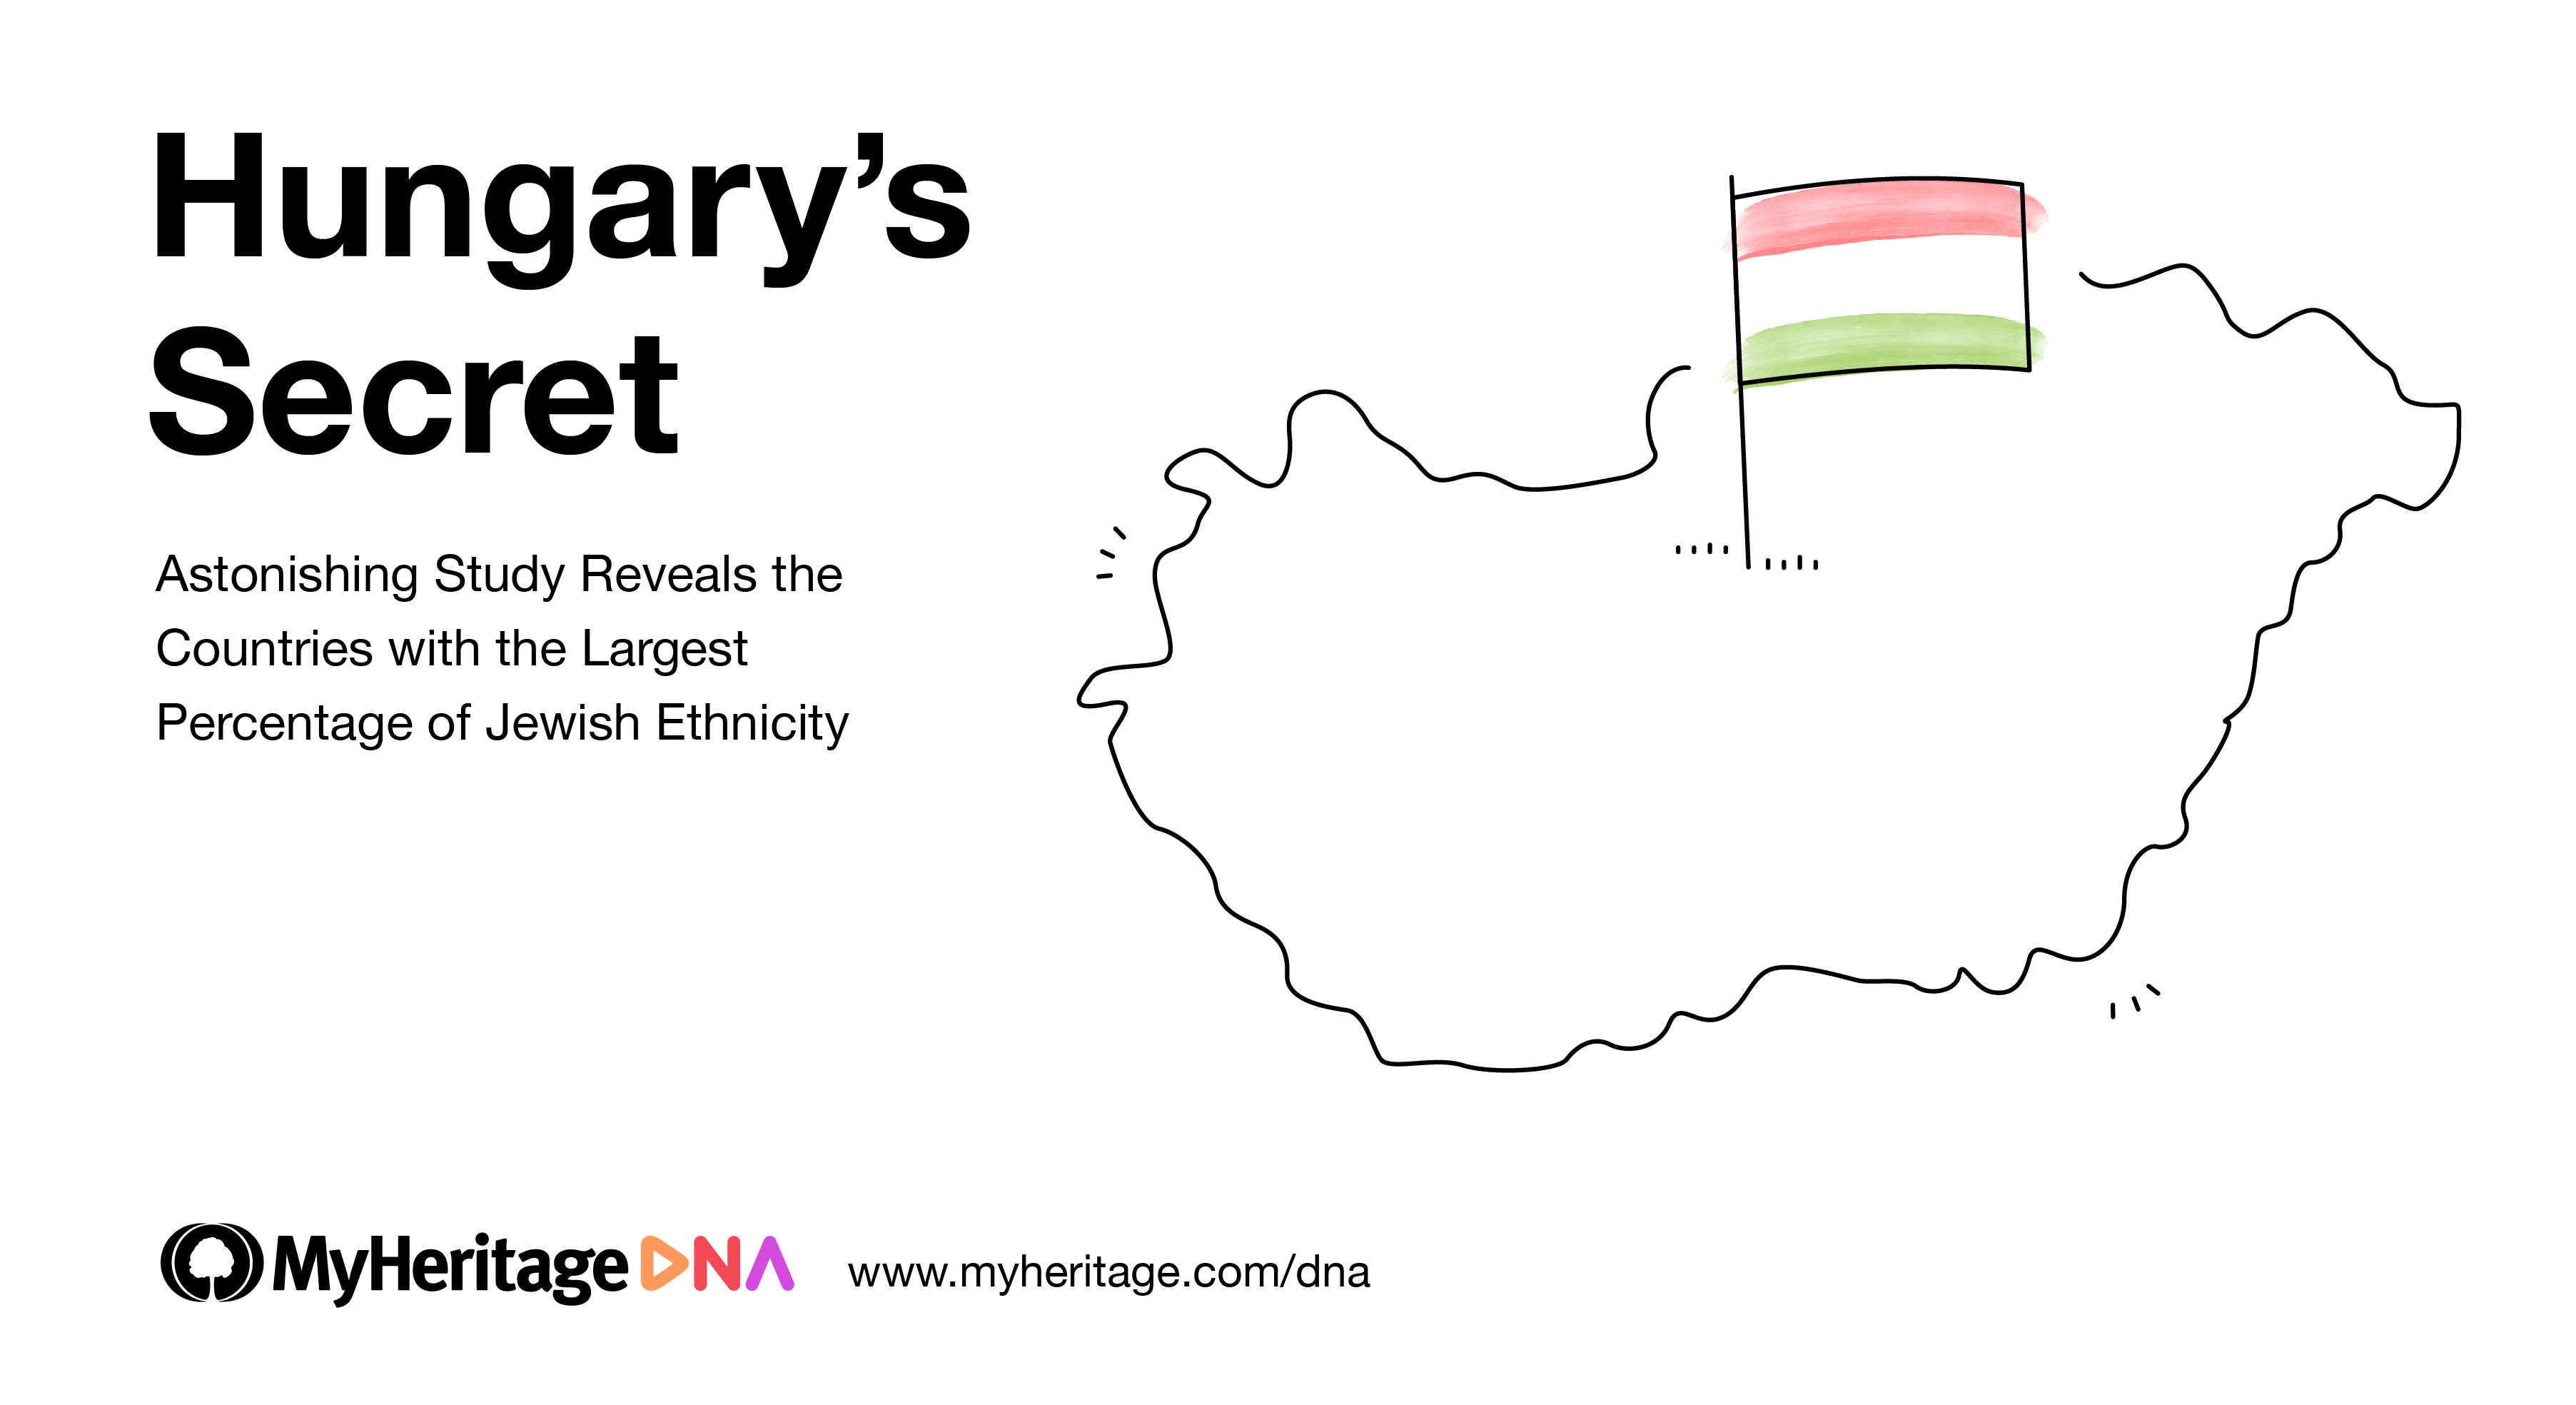 Hungary's Secret: New Study by MyHeritage Reveals that Hungary Has the World's Second Largest Percentage of Population with Jewish Ancestry